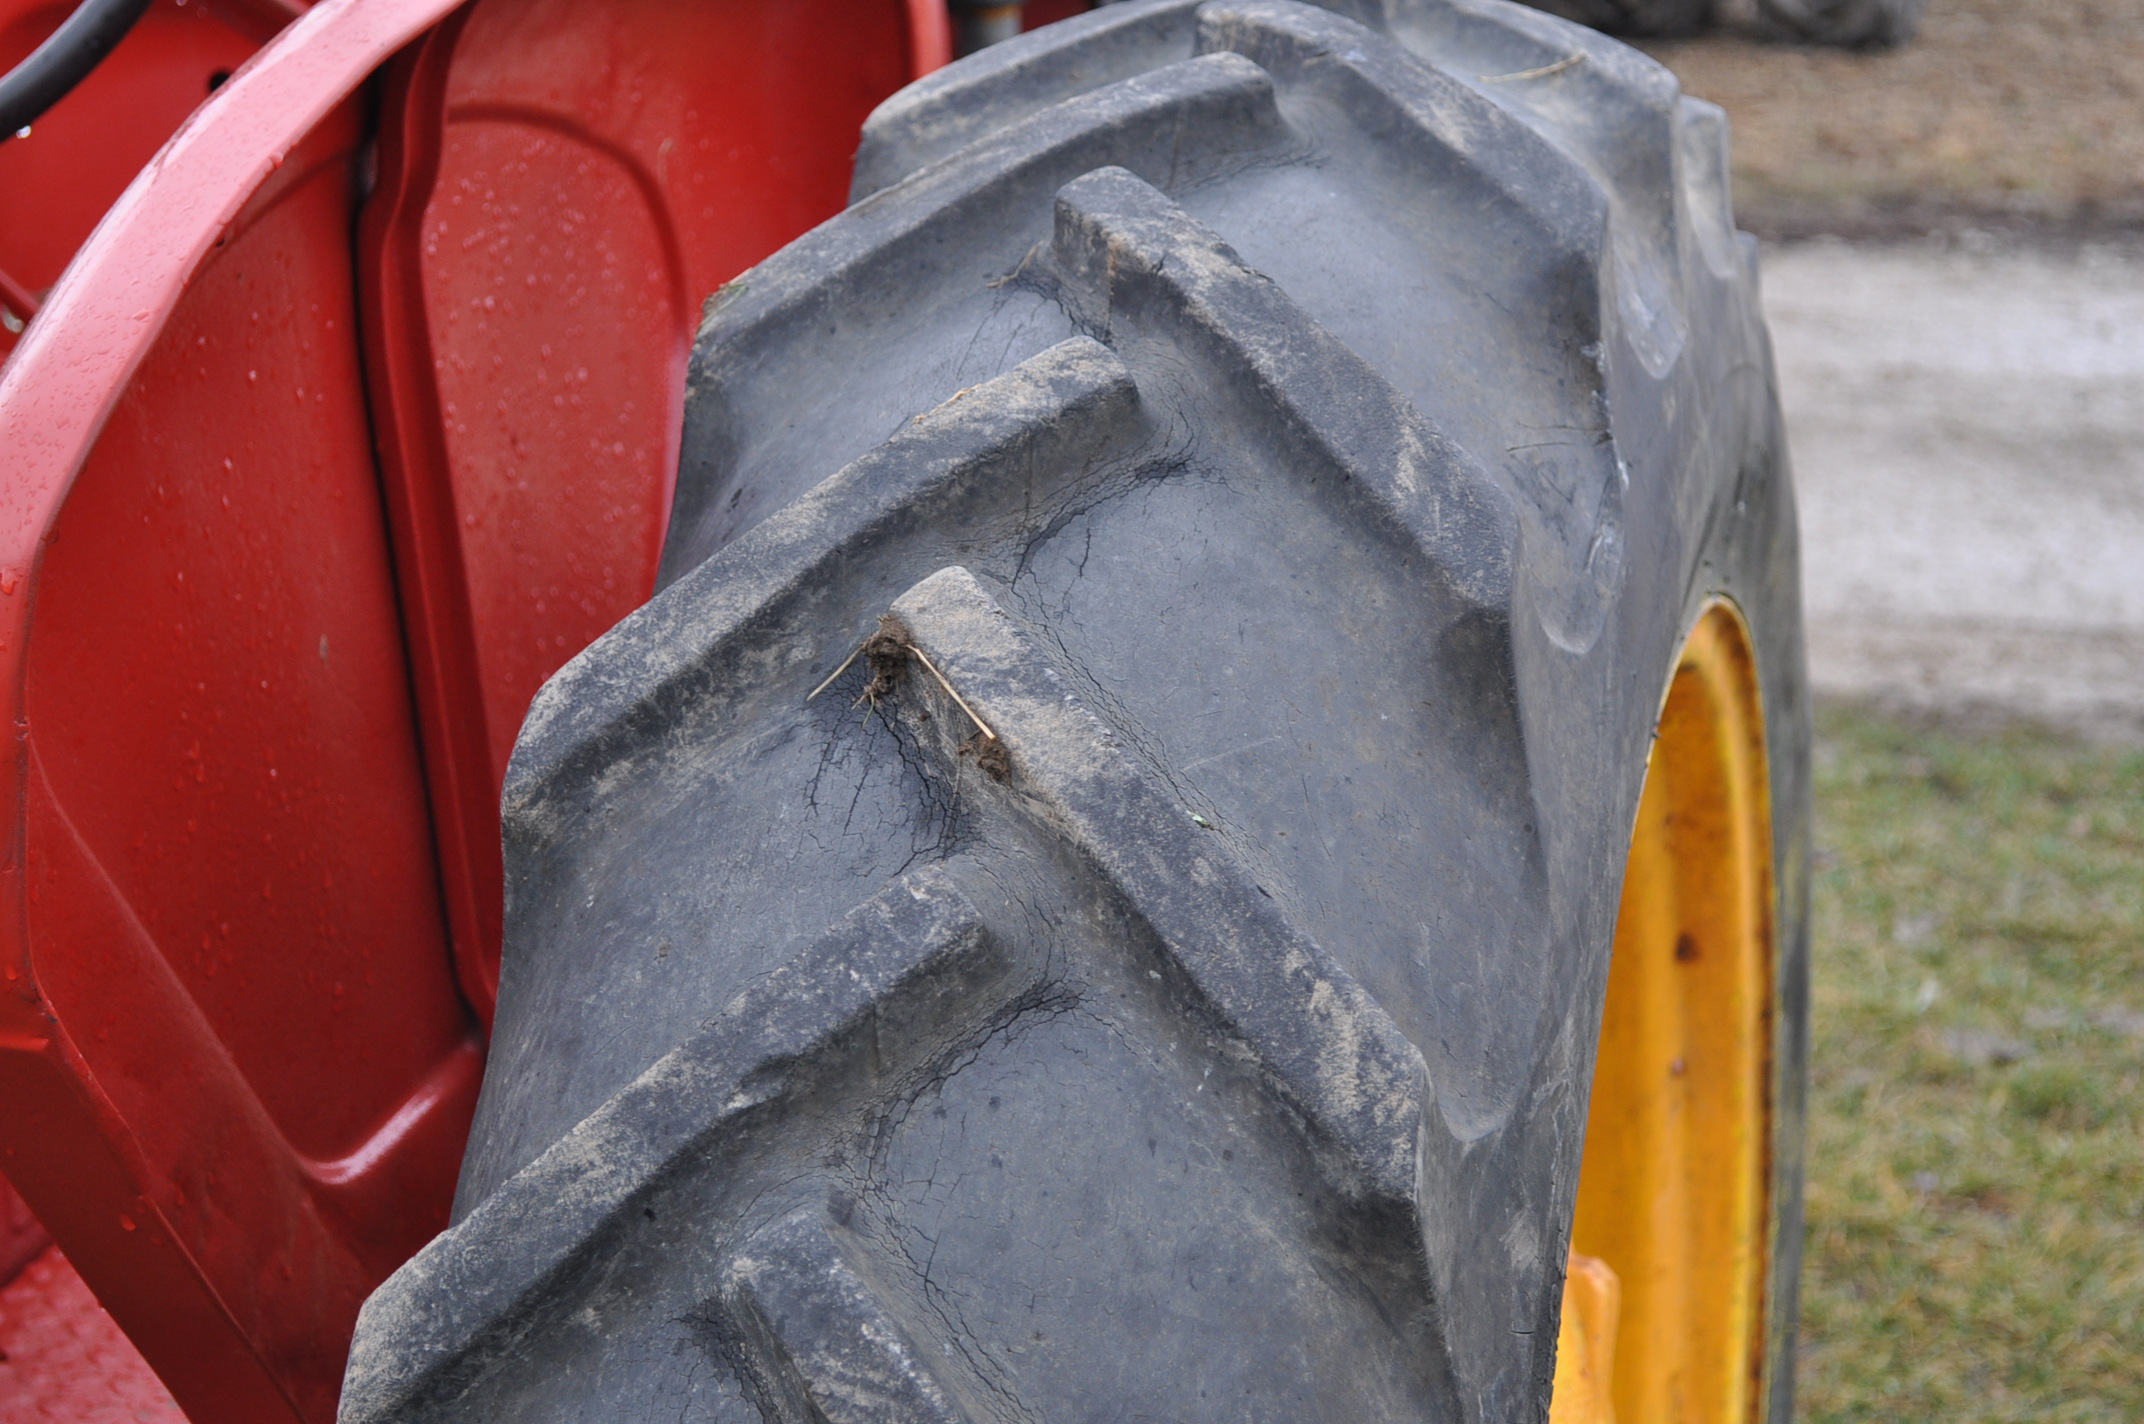 Massey Harris 101 Junior tractor, 12-38 tires, narrow front, 540 pto, SN 501605 - Image 7 of 12